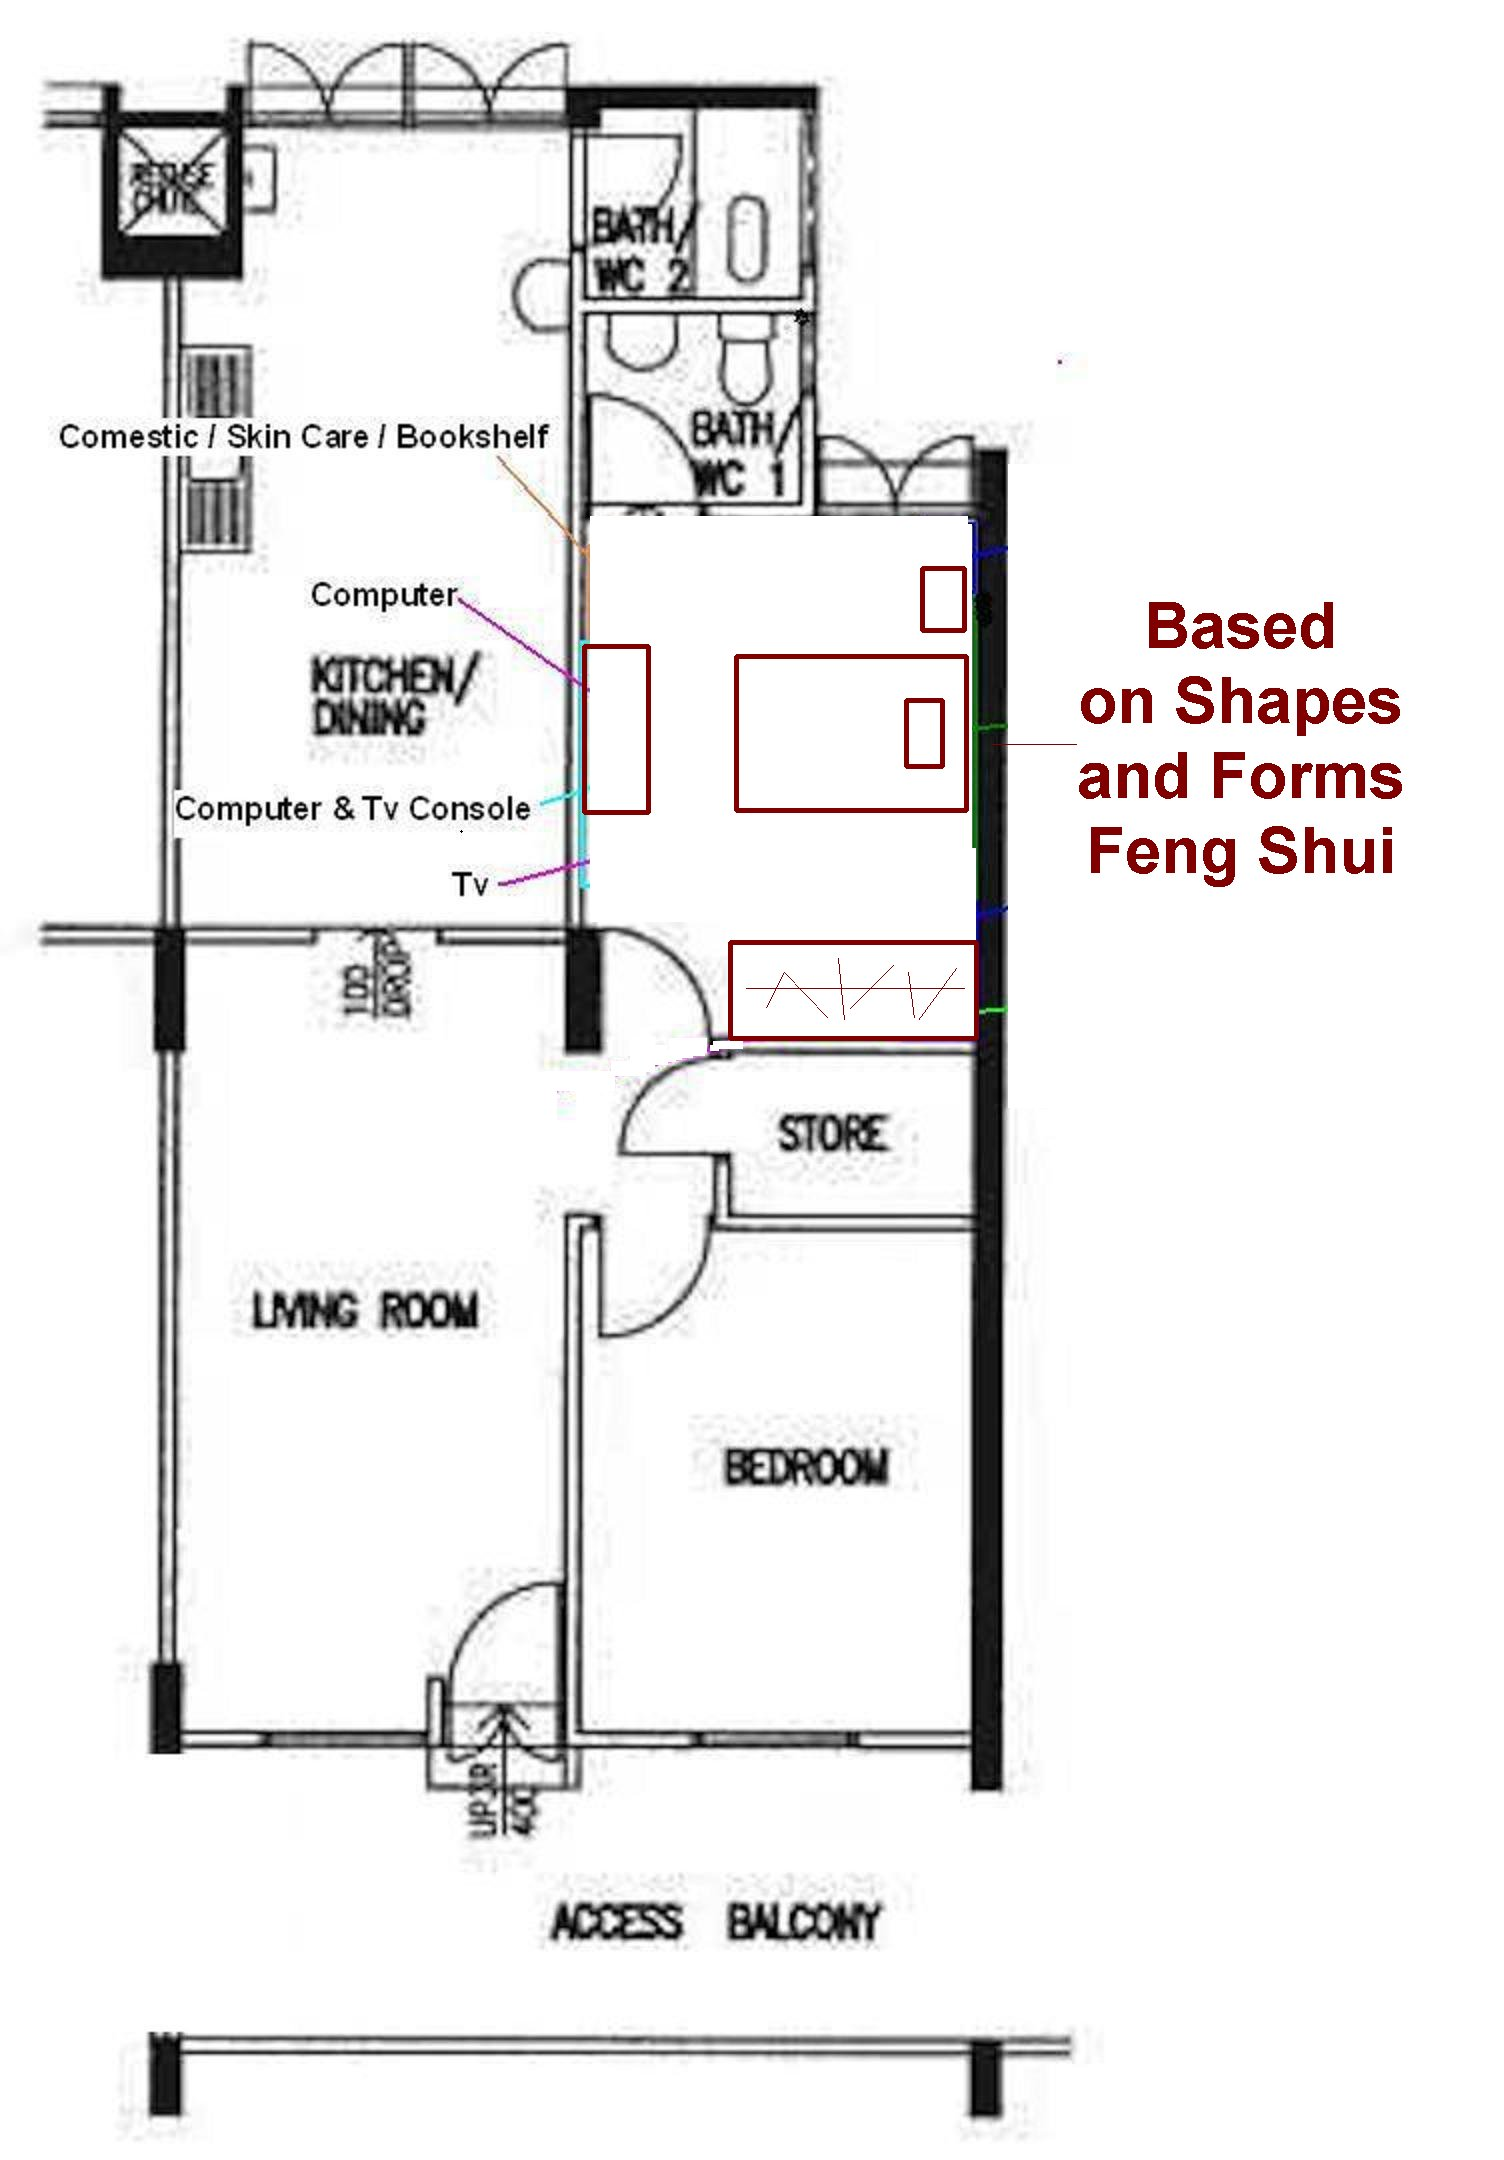 Bedroom Feng Shui General Help Fengshui Geomancy Net